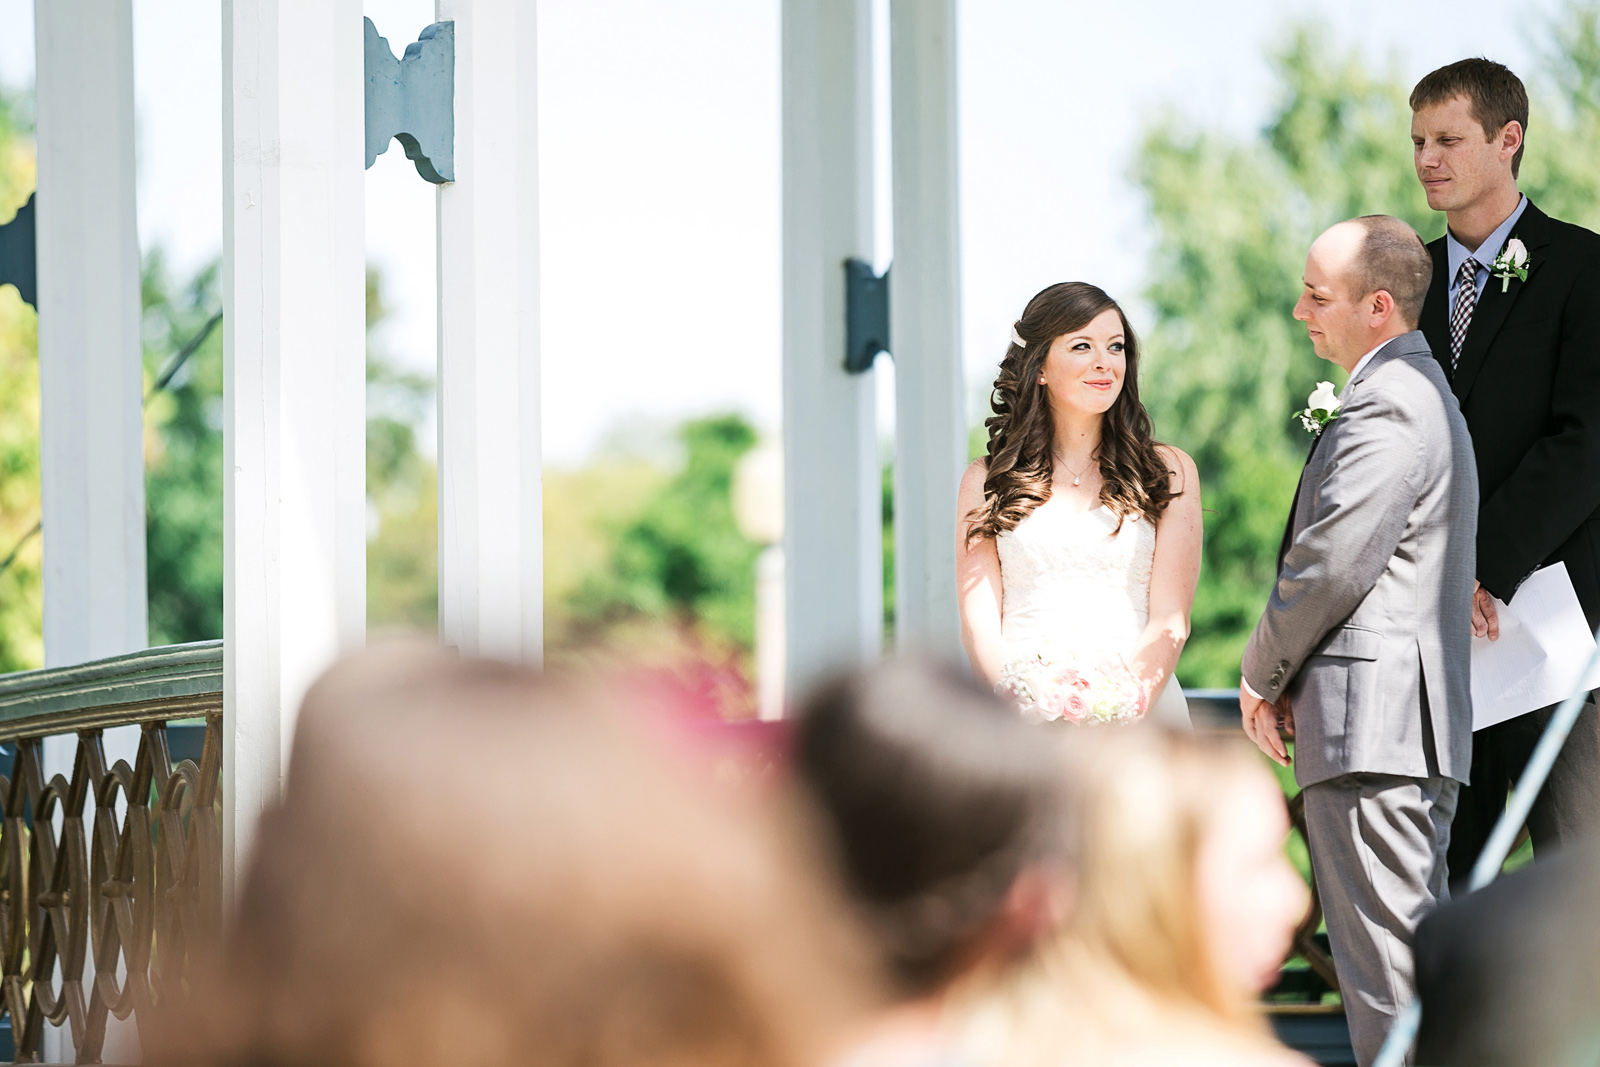 Oldani-Photography-St-Louis-Tower-Grove-Park-Wedding-Photography-Music-Stand_20140927_13363200.jpg